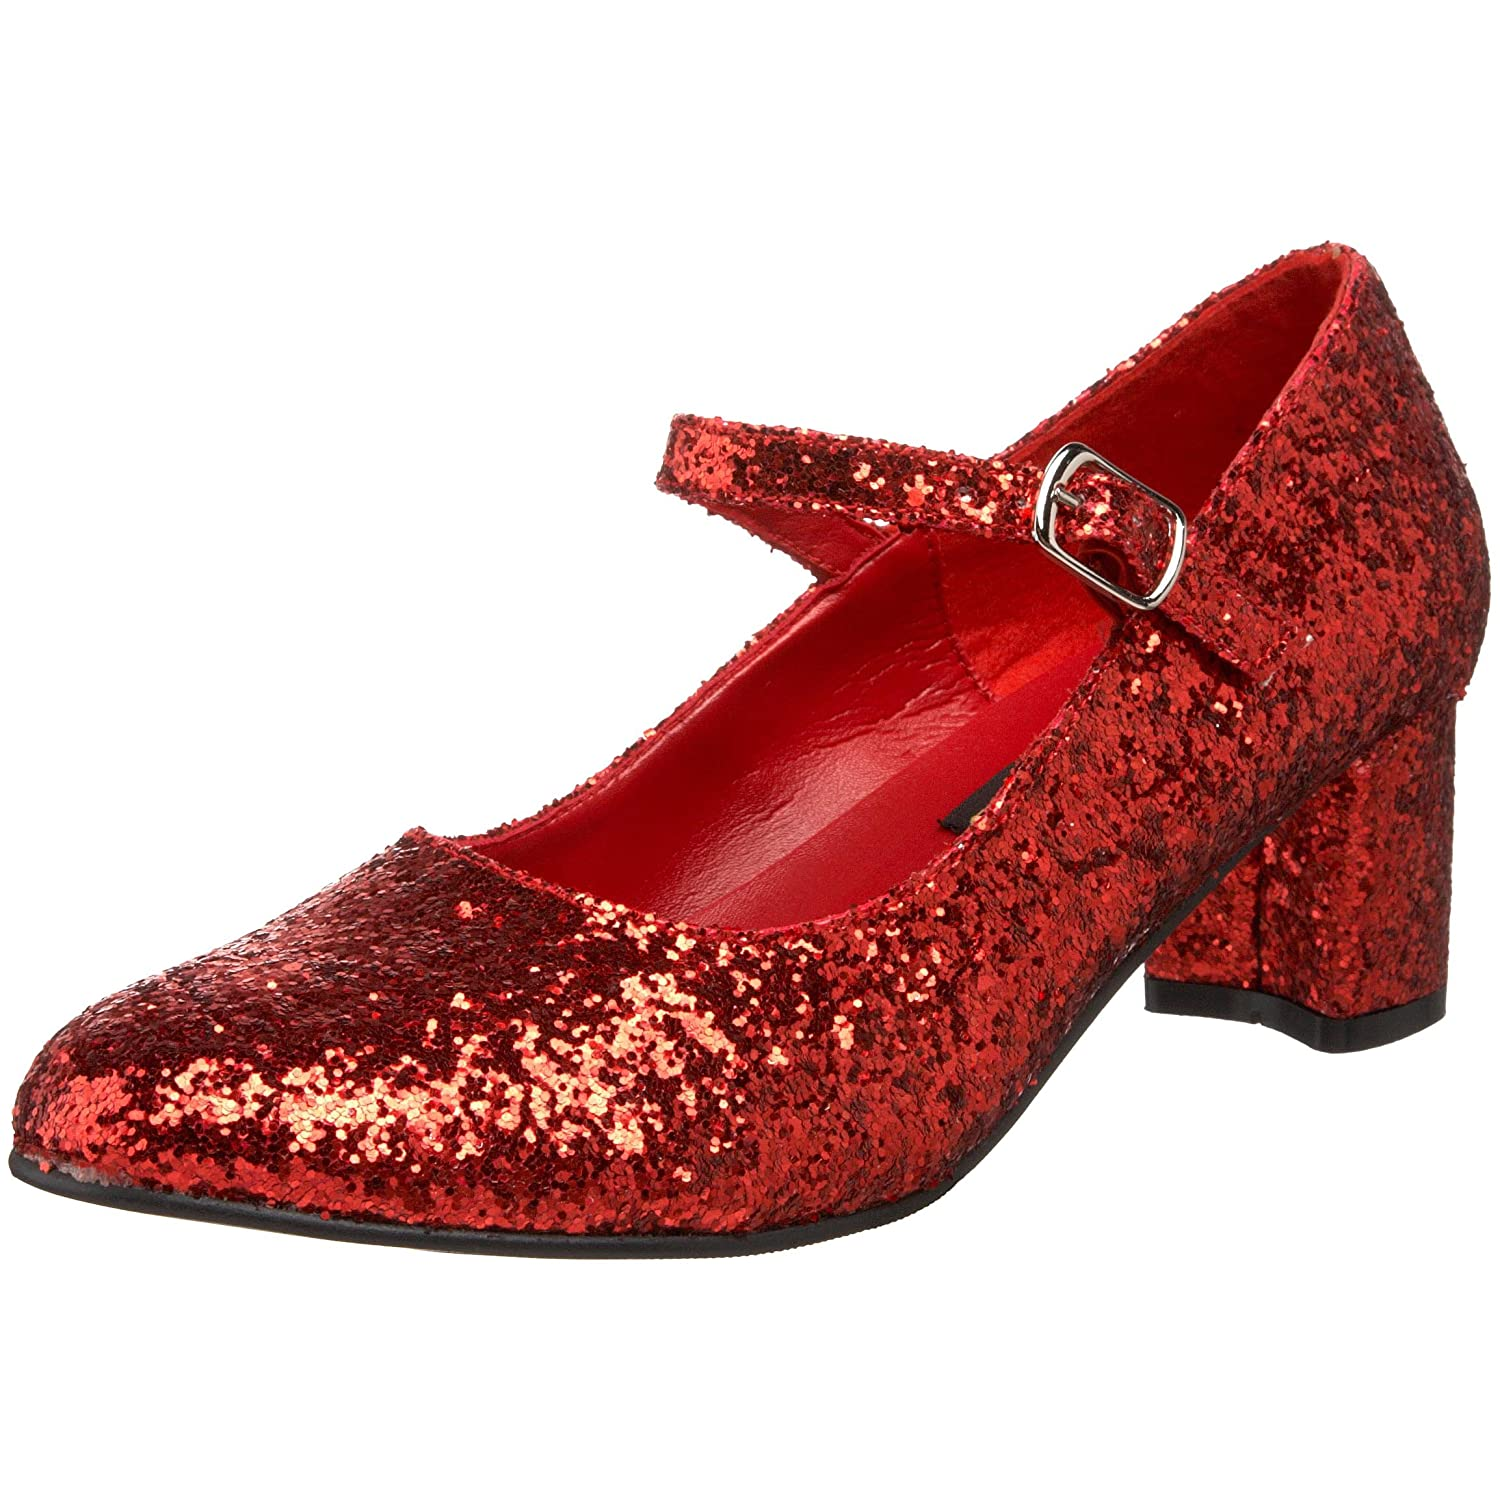 Womens Red Glitter Flats Size 6 Ellie Shoes CRXHHC